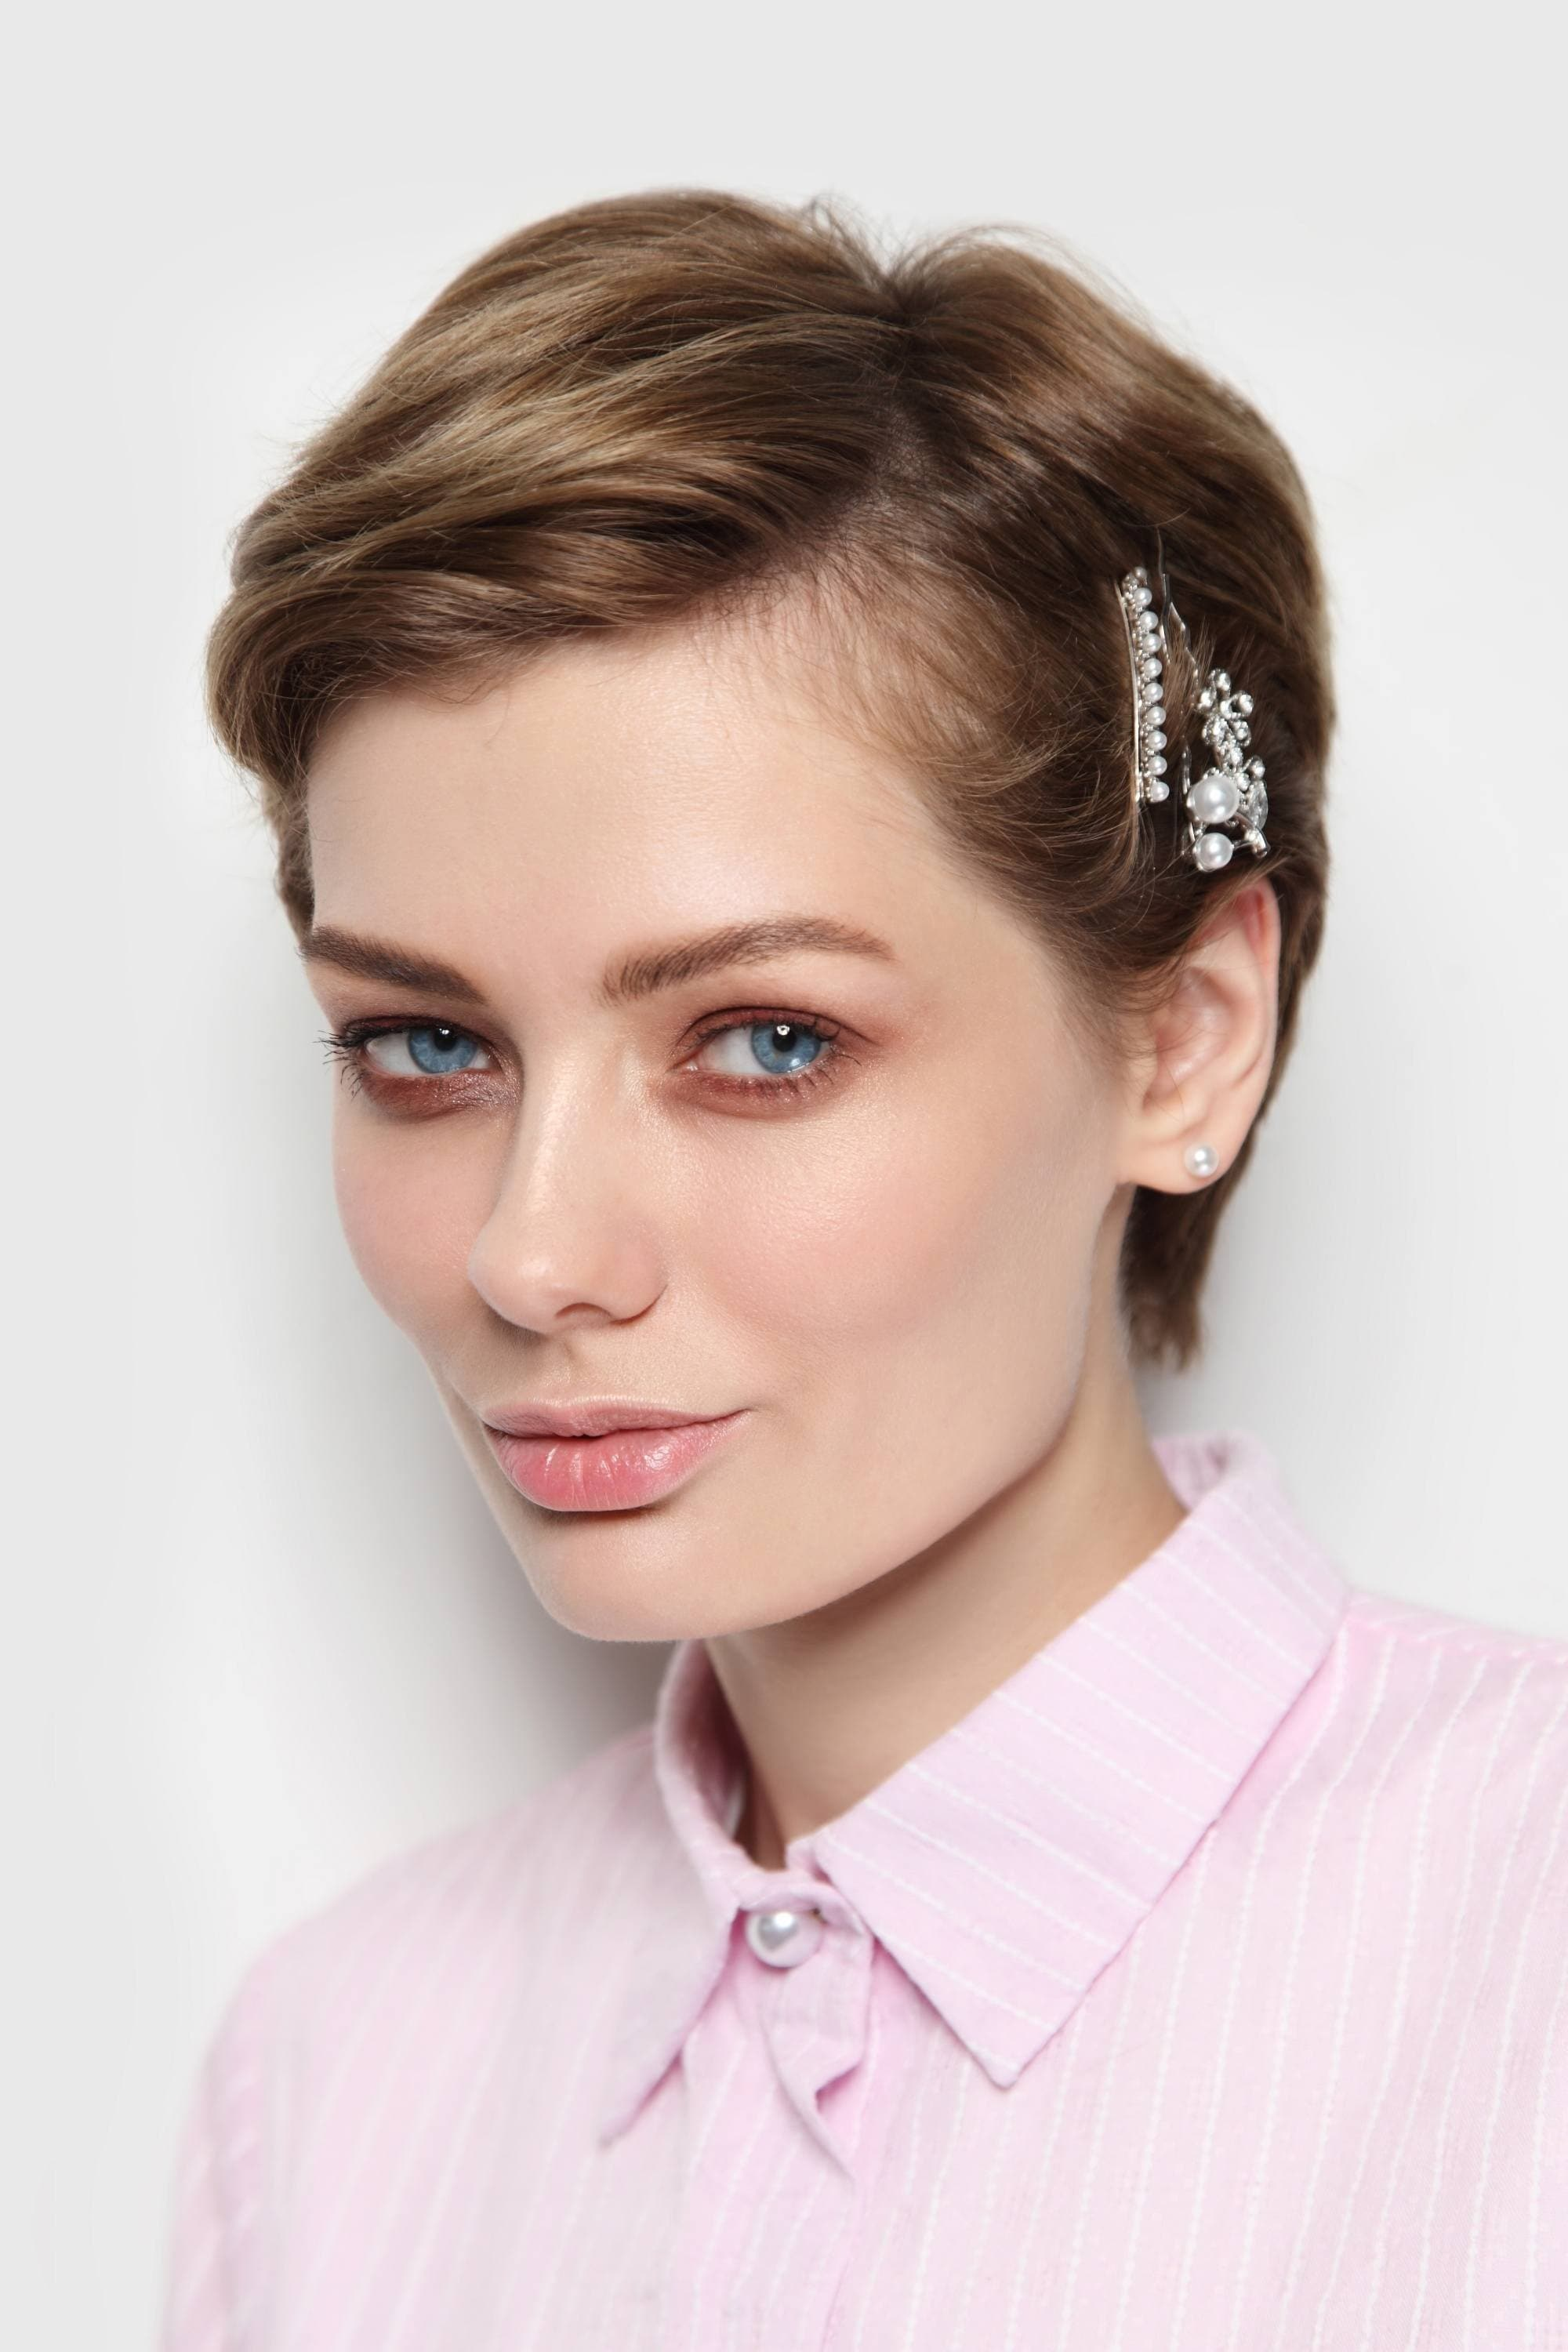 Woman with brown pixie cut with hair clips